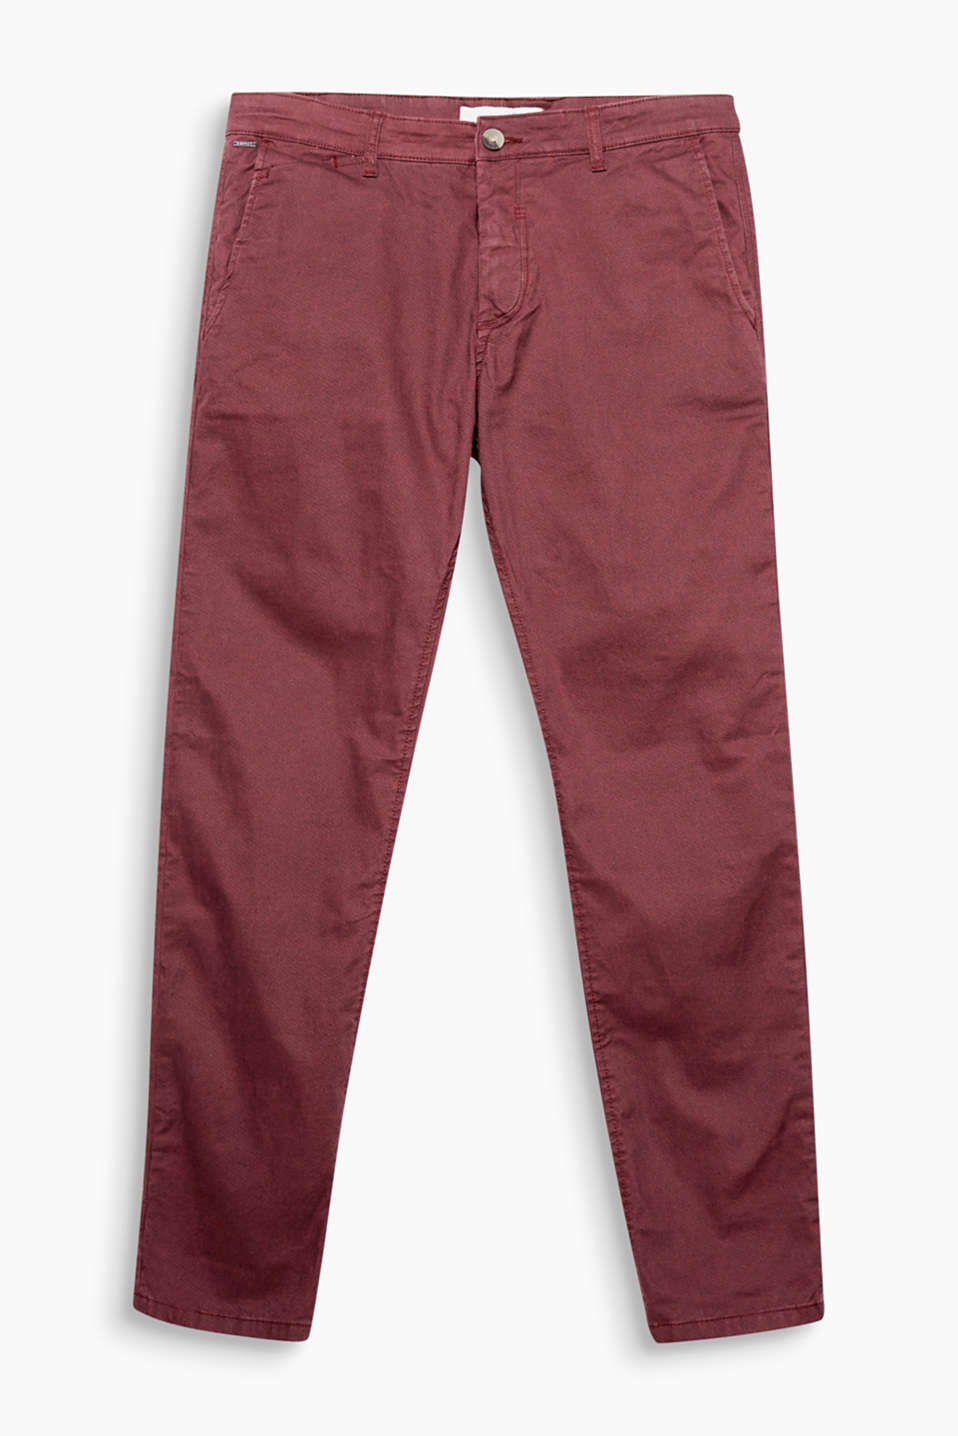 Comfy and stretchy, organic cotton chinos with a fine, minimal print